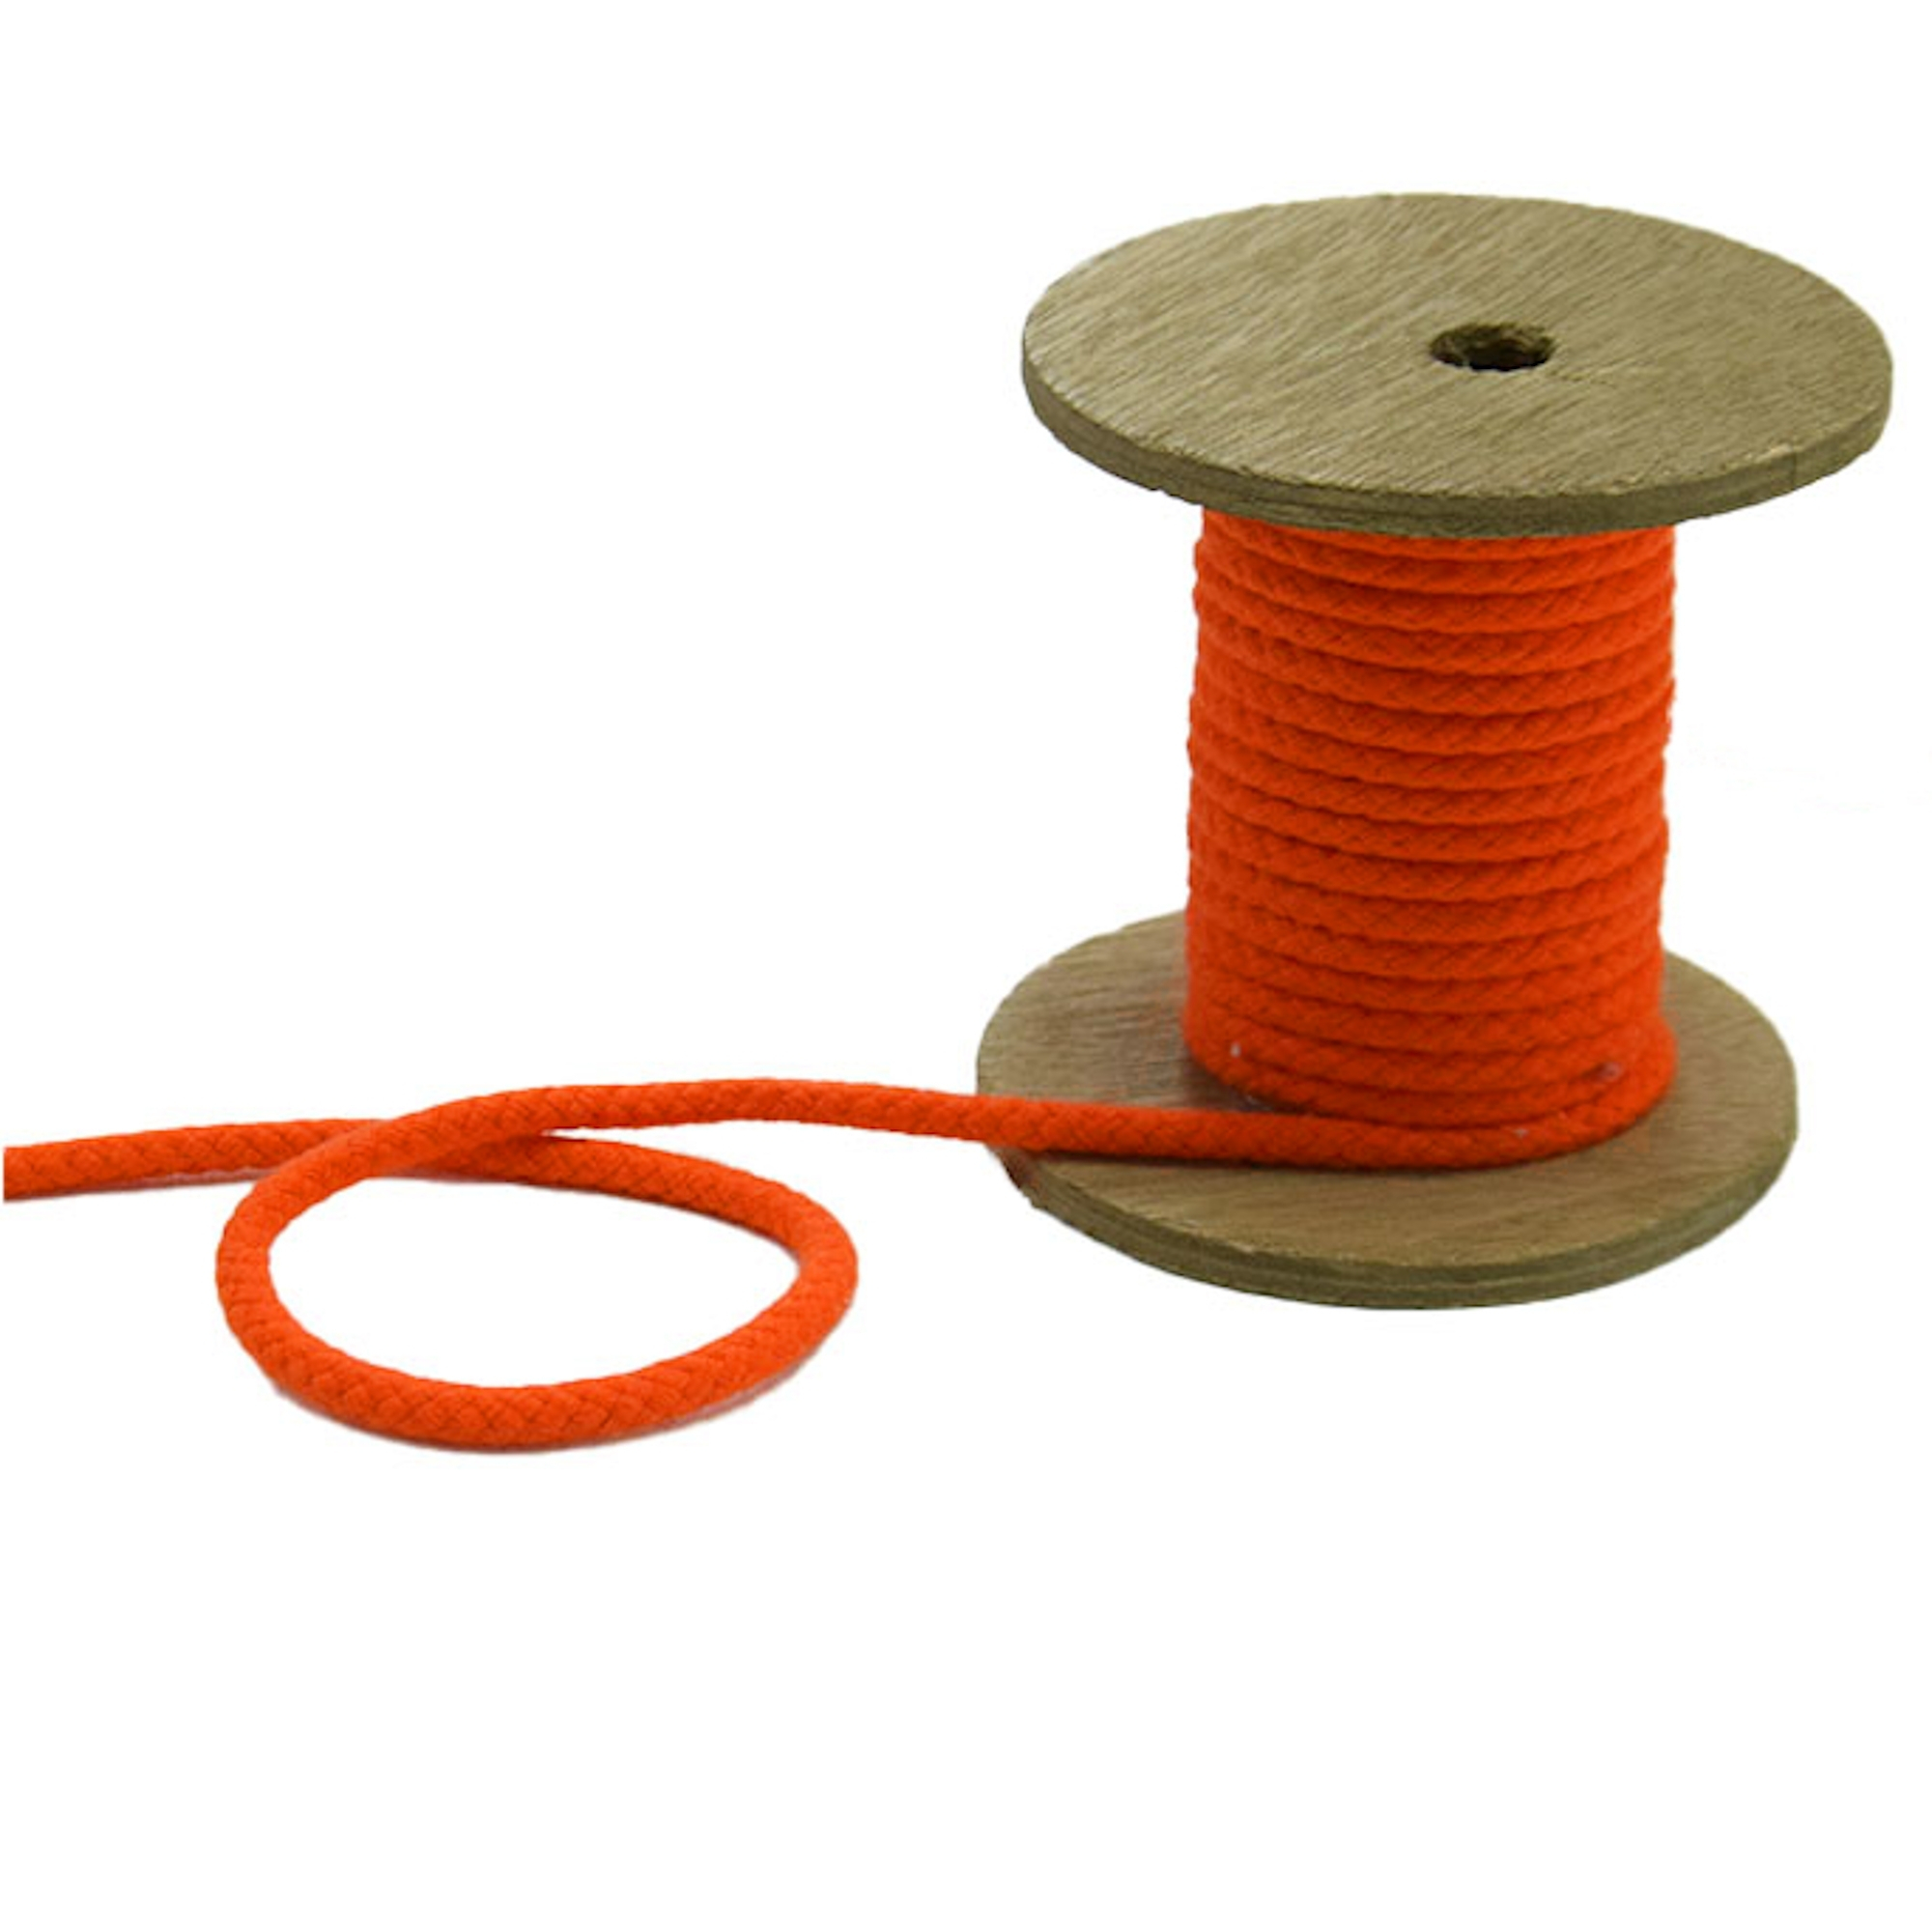 Corde pour veste 5 mm, orange | 42277 | orange